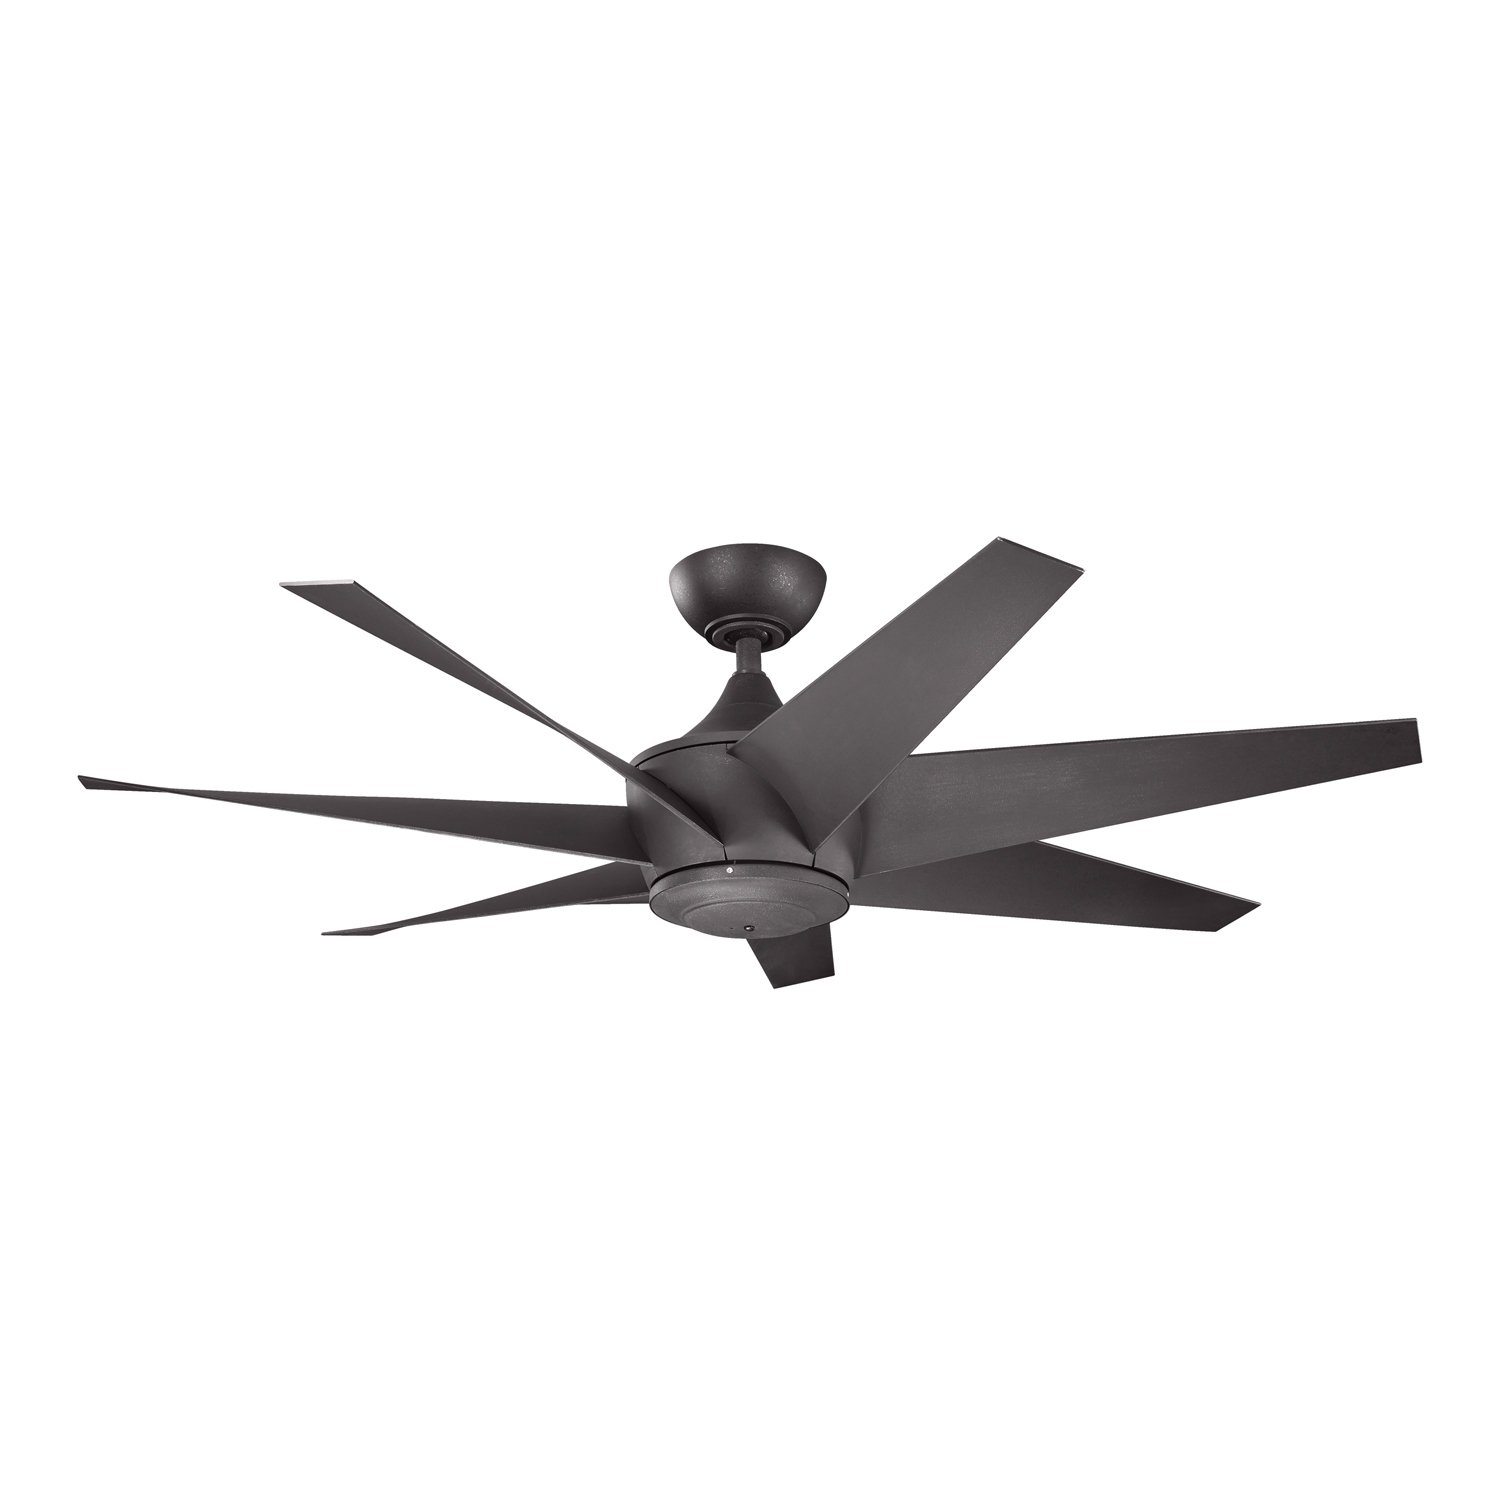 image mount inch ceiling camview cfm magnifying in and with blades glass flush black blade item capitol opal shown fan fanimation finish